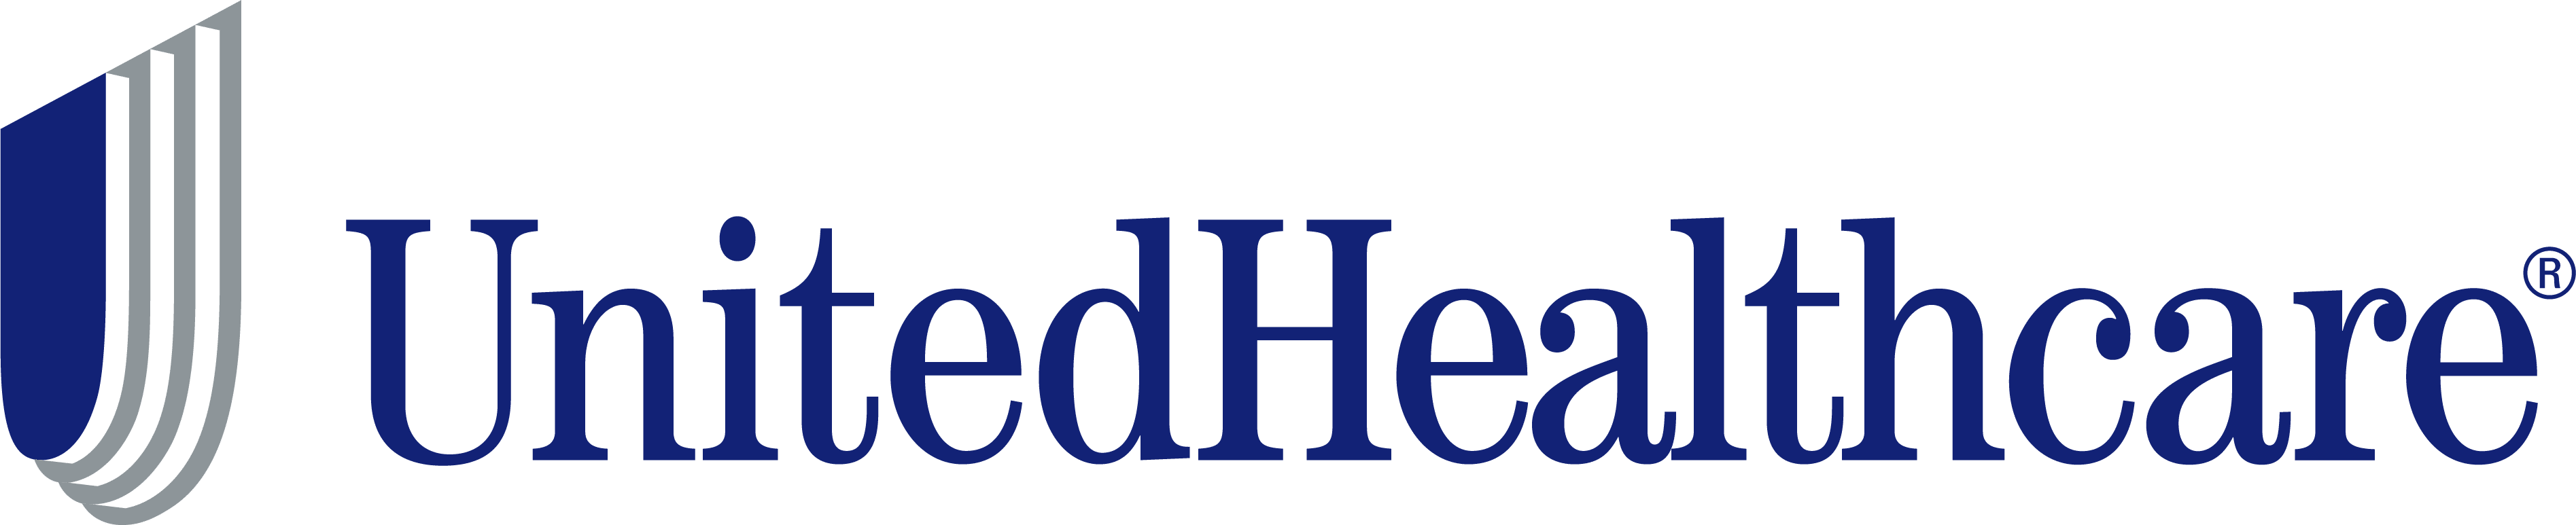 UnitedHealthcare Review - 2019